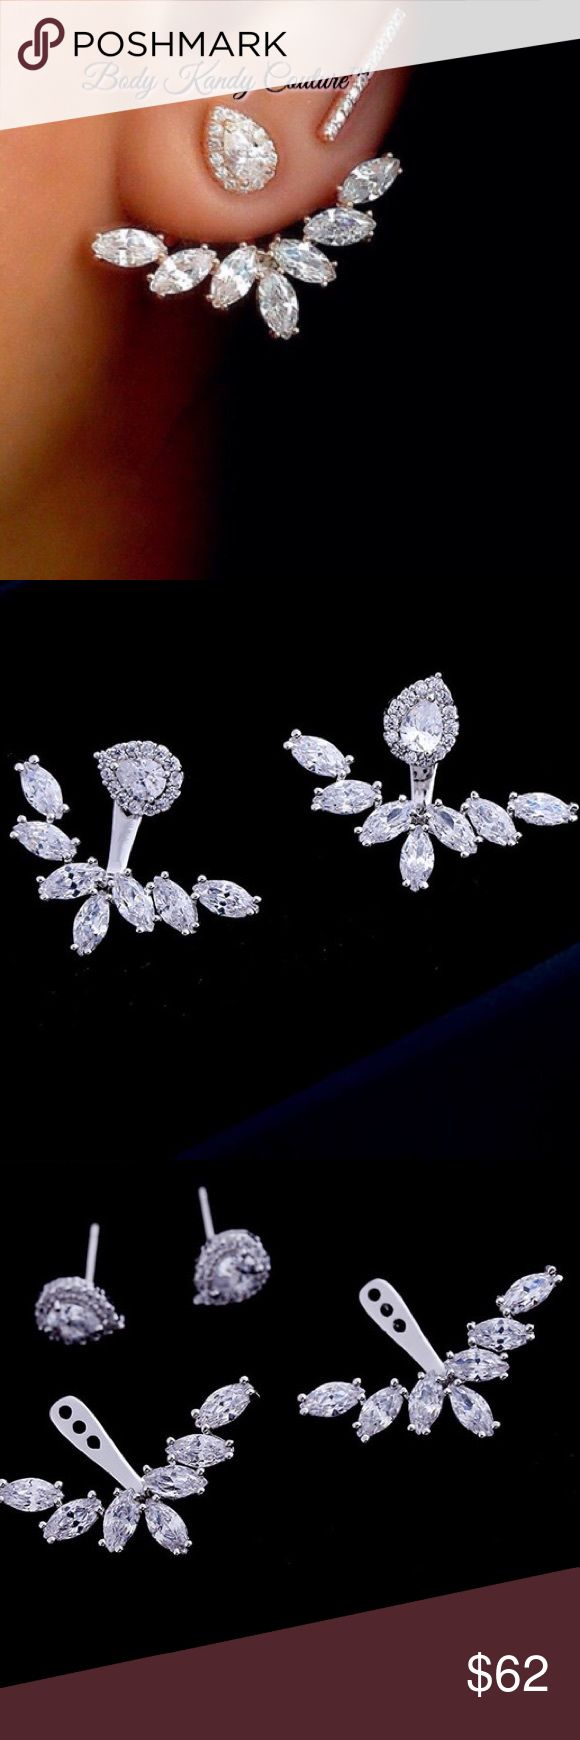 """Flower Ear Jacket Bridal Cz Ear Jacket Spike Flower Ear Jacket Cz Bridal Earring Jacket Spike Front Back Earrings.Prong Set Cubic Zirconia Stones in .925 Sterling Silver. Wear them 2 ways.Wear the stud alone or with the ear jacket that goes on the back of the post.All items Are Handmade Upon Order. Production Time approx 2 weeks"""" *Unique One of a Kind Jewelry by Body Kandy Couture. Please ask all Question's prior to Purchasing.All Items are non-refundable but we make exceptions depending on…"""